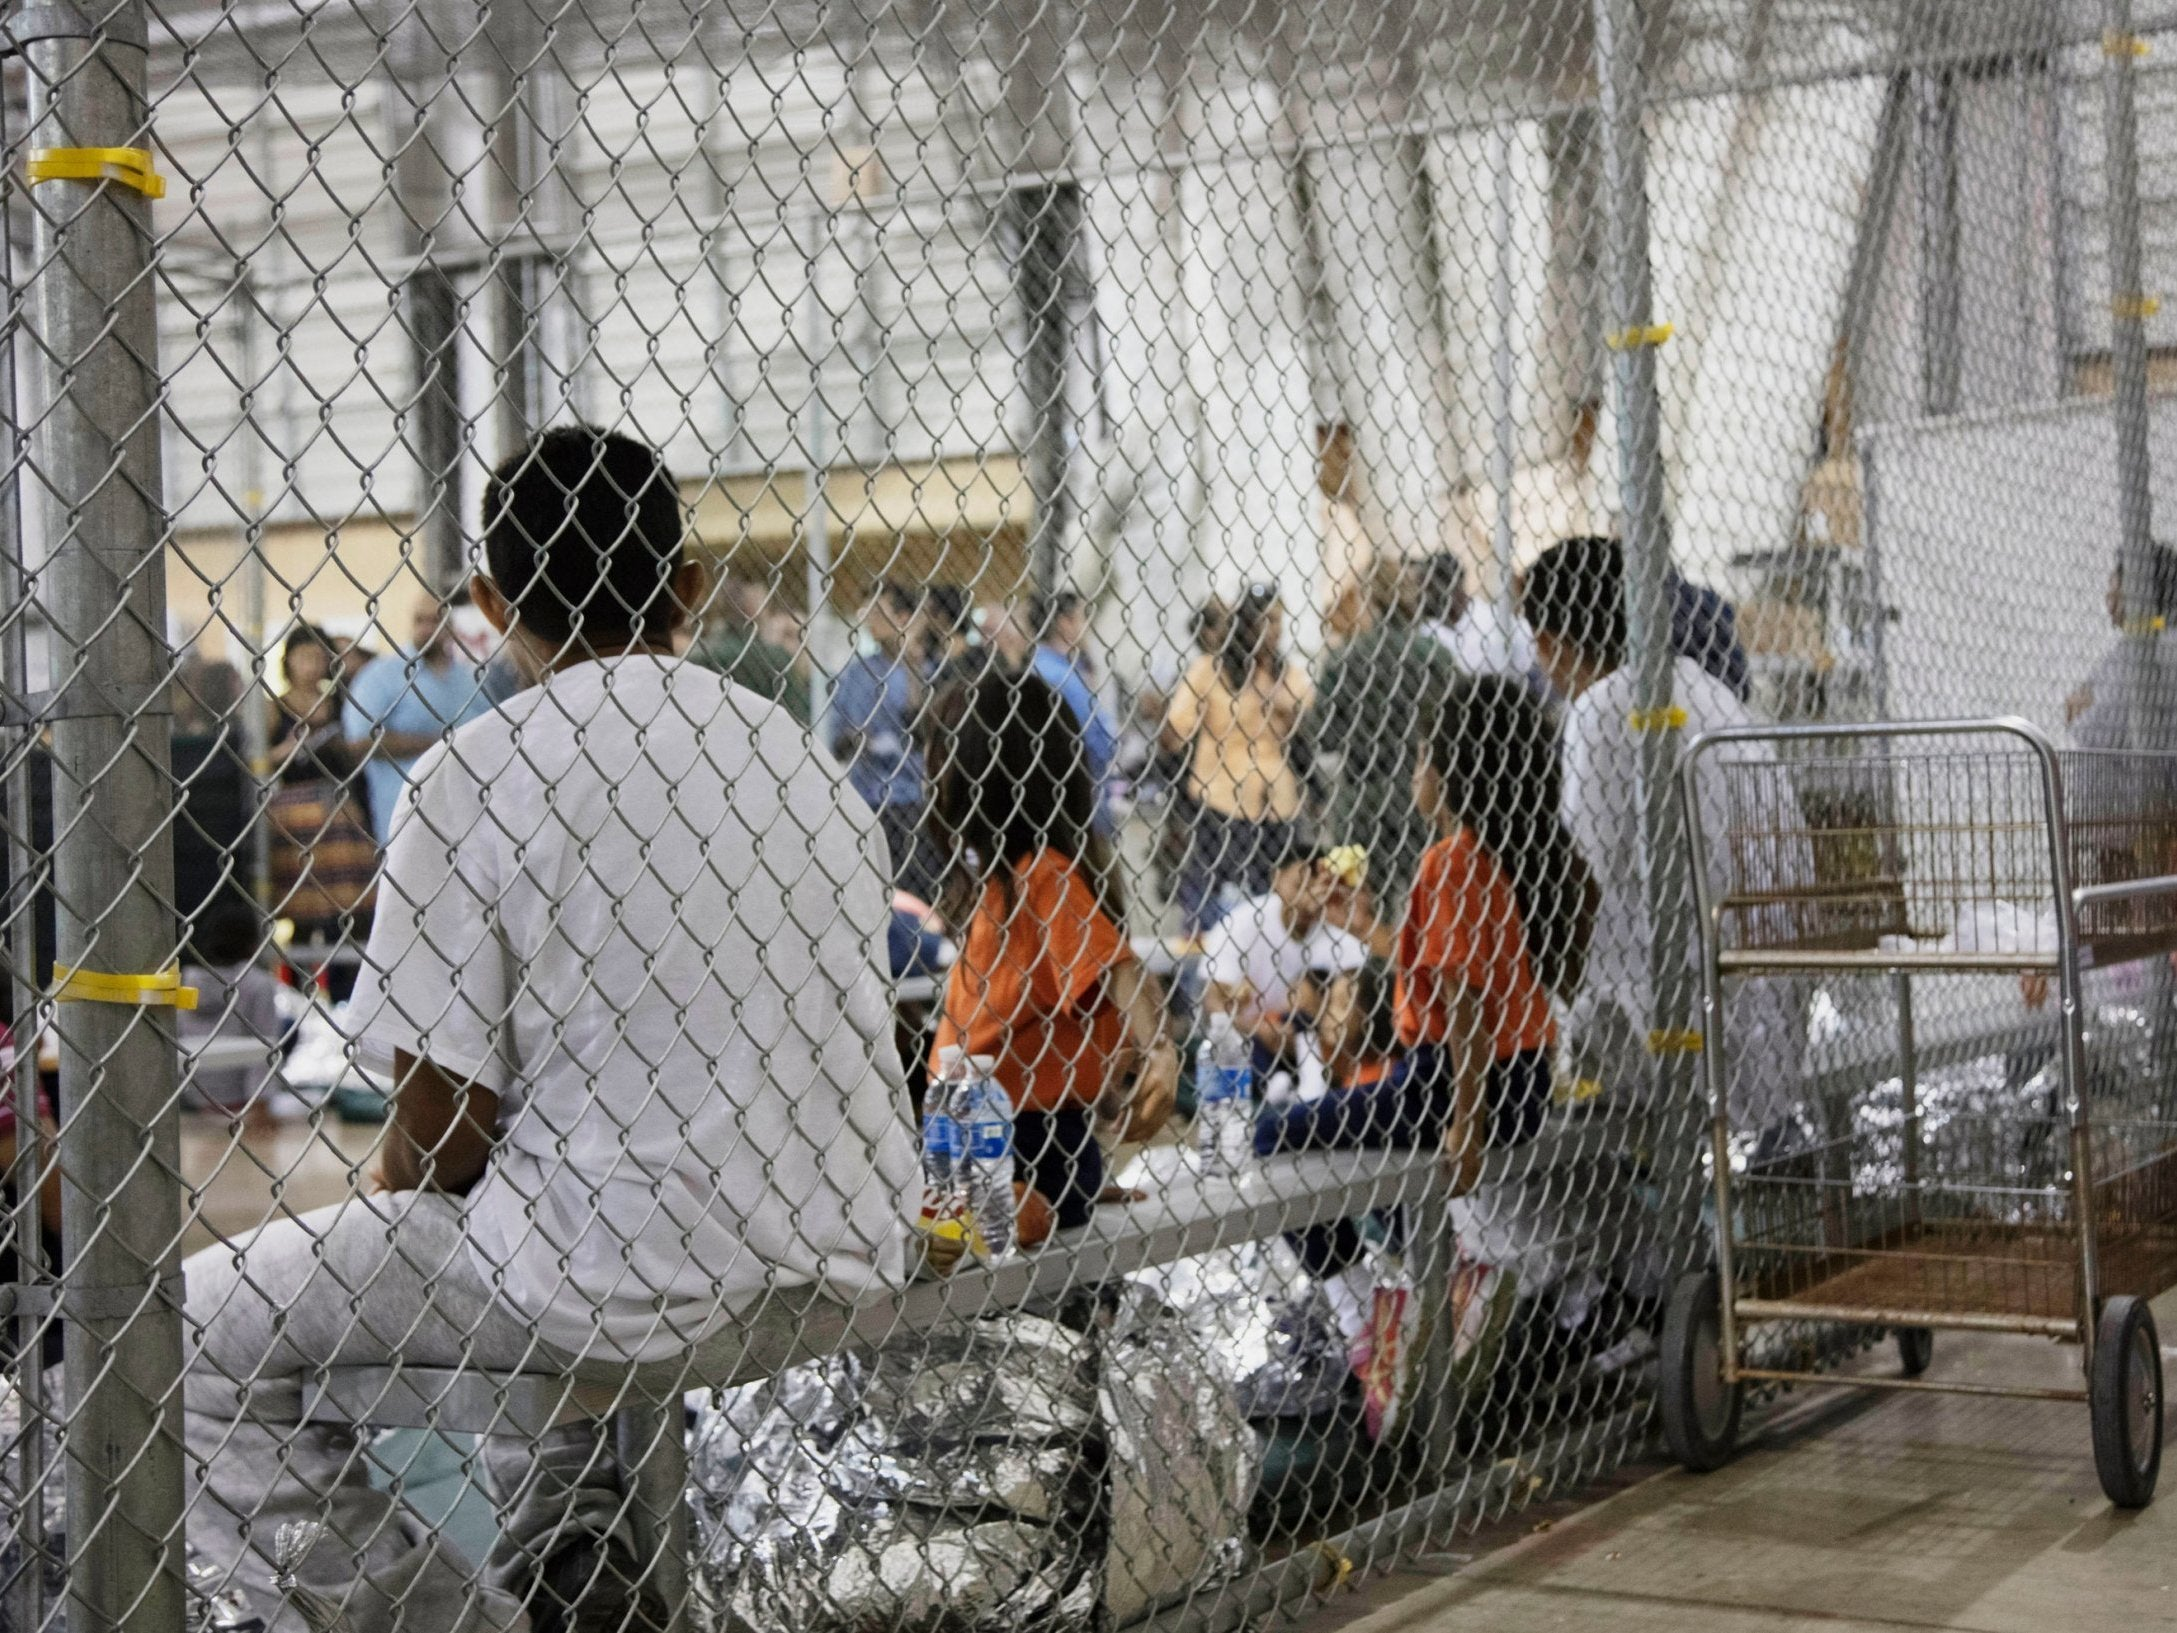 Opinion: Trump's plan to cage kids indefinitely while denying them vaccines is ethnic cleansing in plain sight